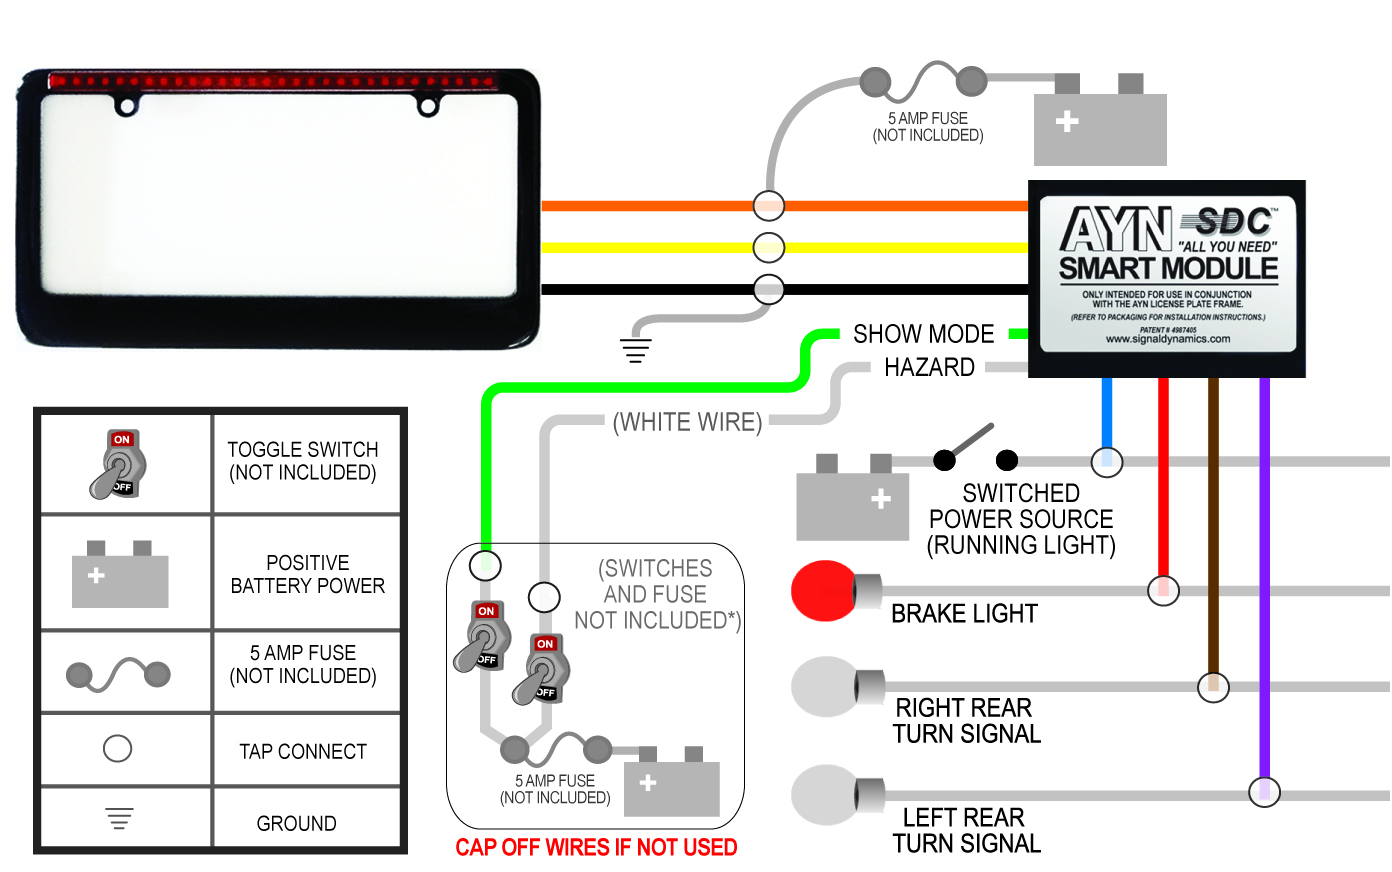 black-auto-wiring-diagram.jpg